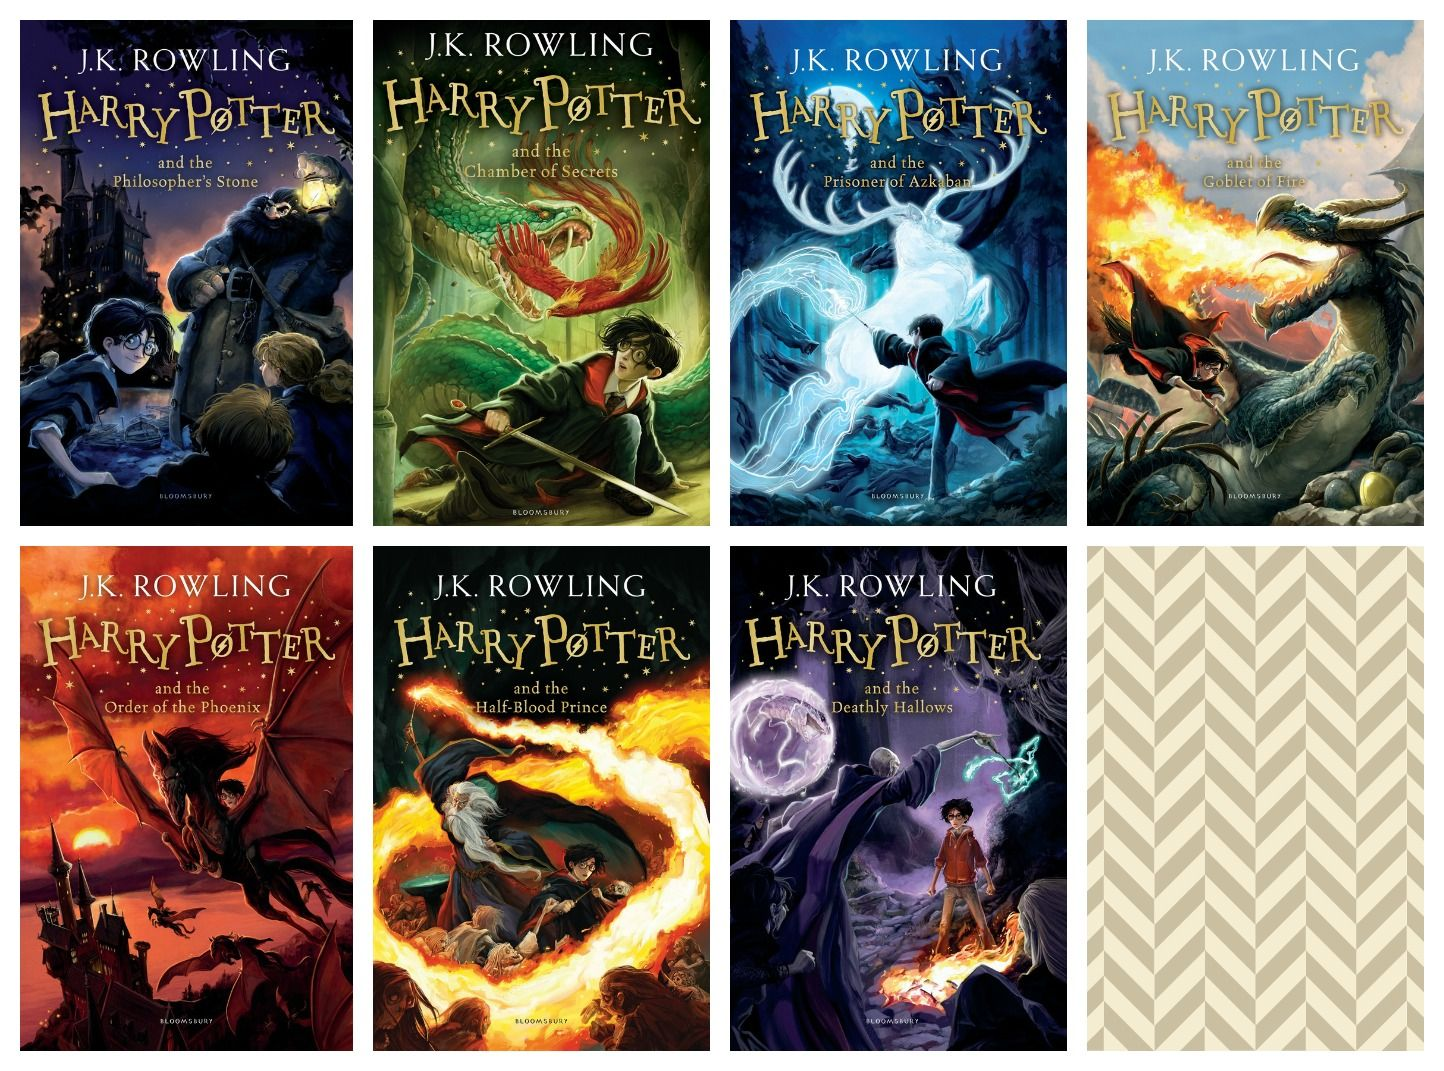 Harry Potter Book Set Original Covers : New uk children edition covers harry potter pinterest